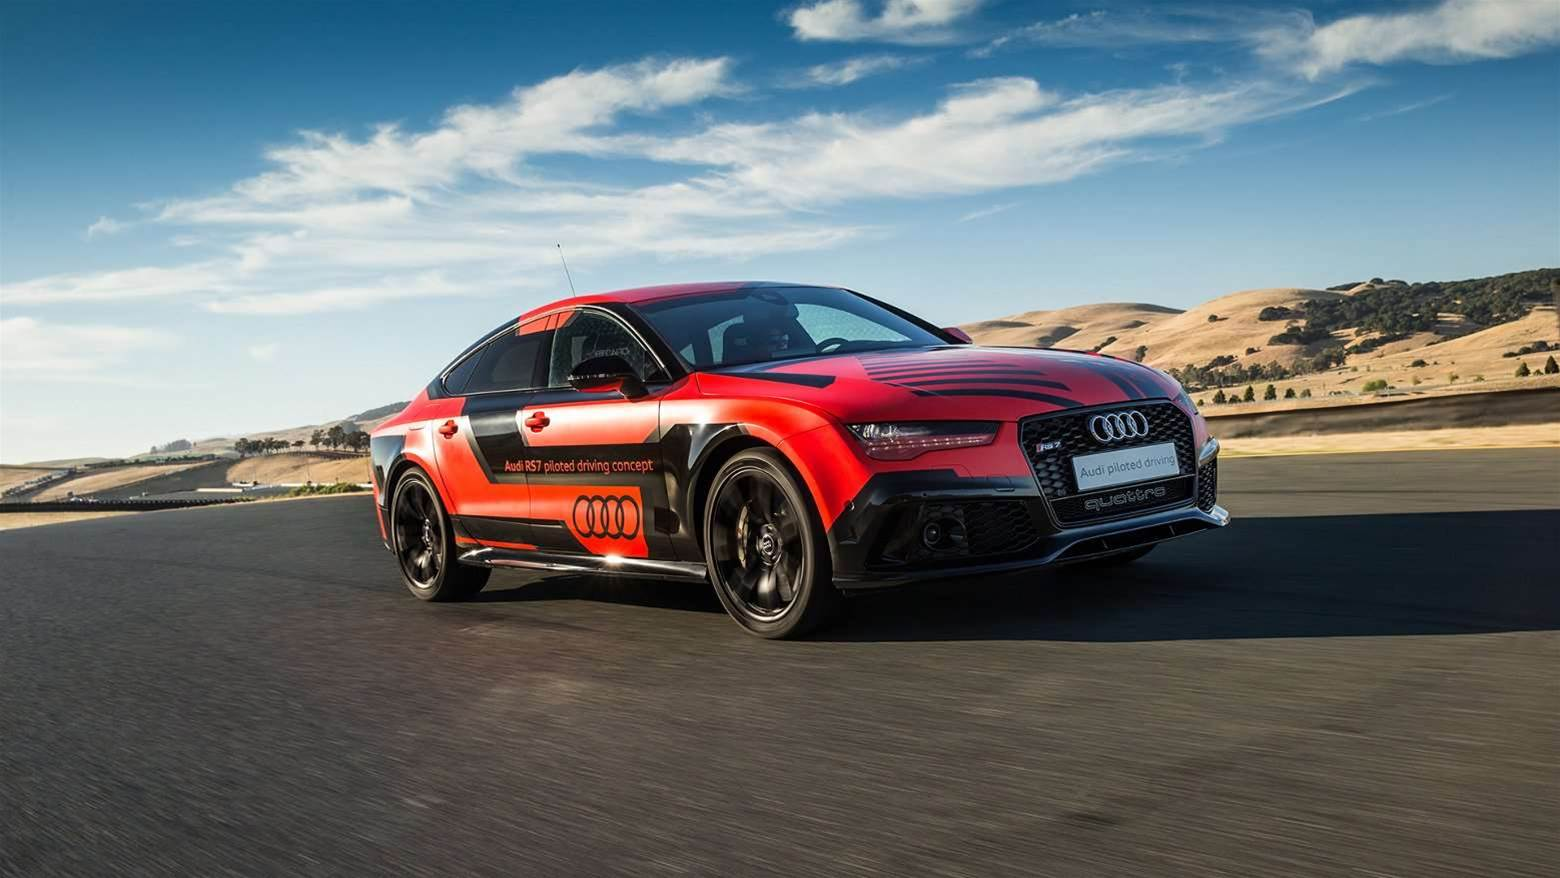 Audi's Autonomous Vehicle Gets Track Days